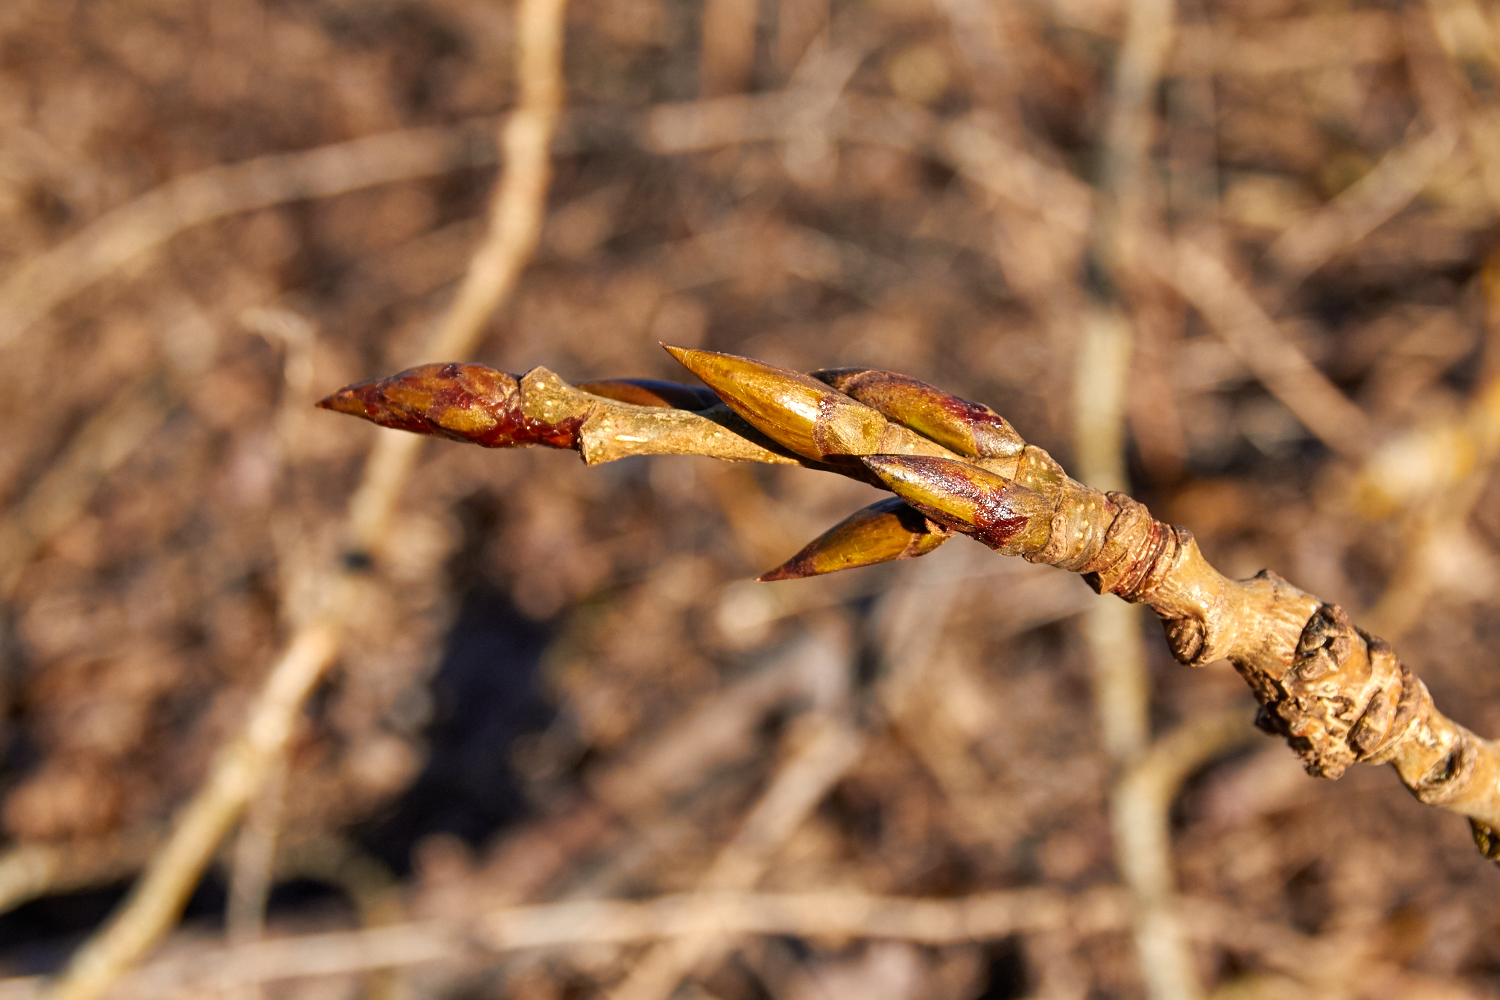 The first scent of the resinous, sweet-smelling buds heralds the arrival of spring and the beginning of the harvest season.© Scott Kloos. 2015. All Rights Reserved.